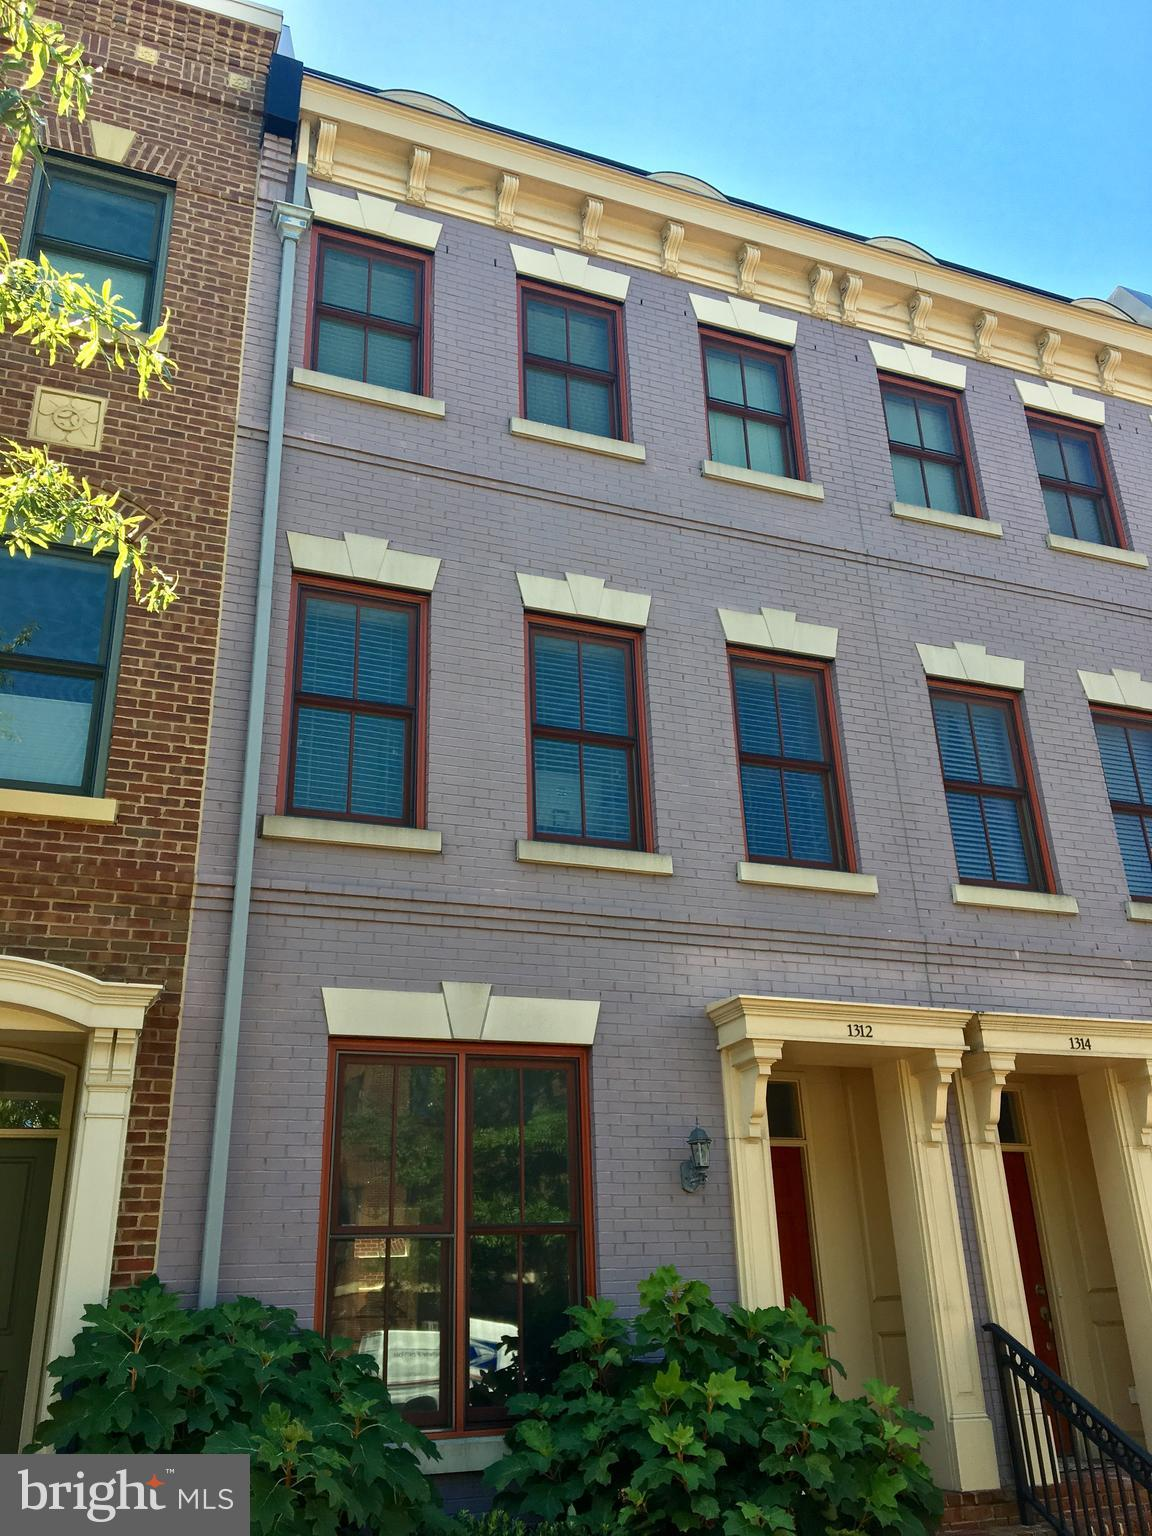 All brick 3 lvl TH in superb location - Bright light thruout - Granite kitchen - LR & DR gleaming wood floors & gas FPL - 3 en suite beds/baths - 3rd floor MBR suite w/luxury bath + balcony - bricked in patio - 2  garage spots - 2 blks to shops, grocery & restaurants - 4 blks to metro - 12 min to airport - Monthly fee covers most exterior, plantings, garage, fitness center, security. Lock & leave!